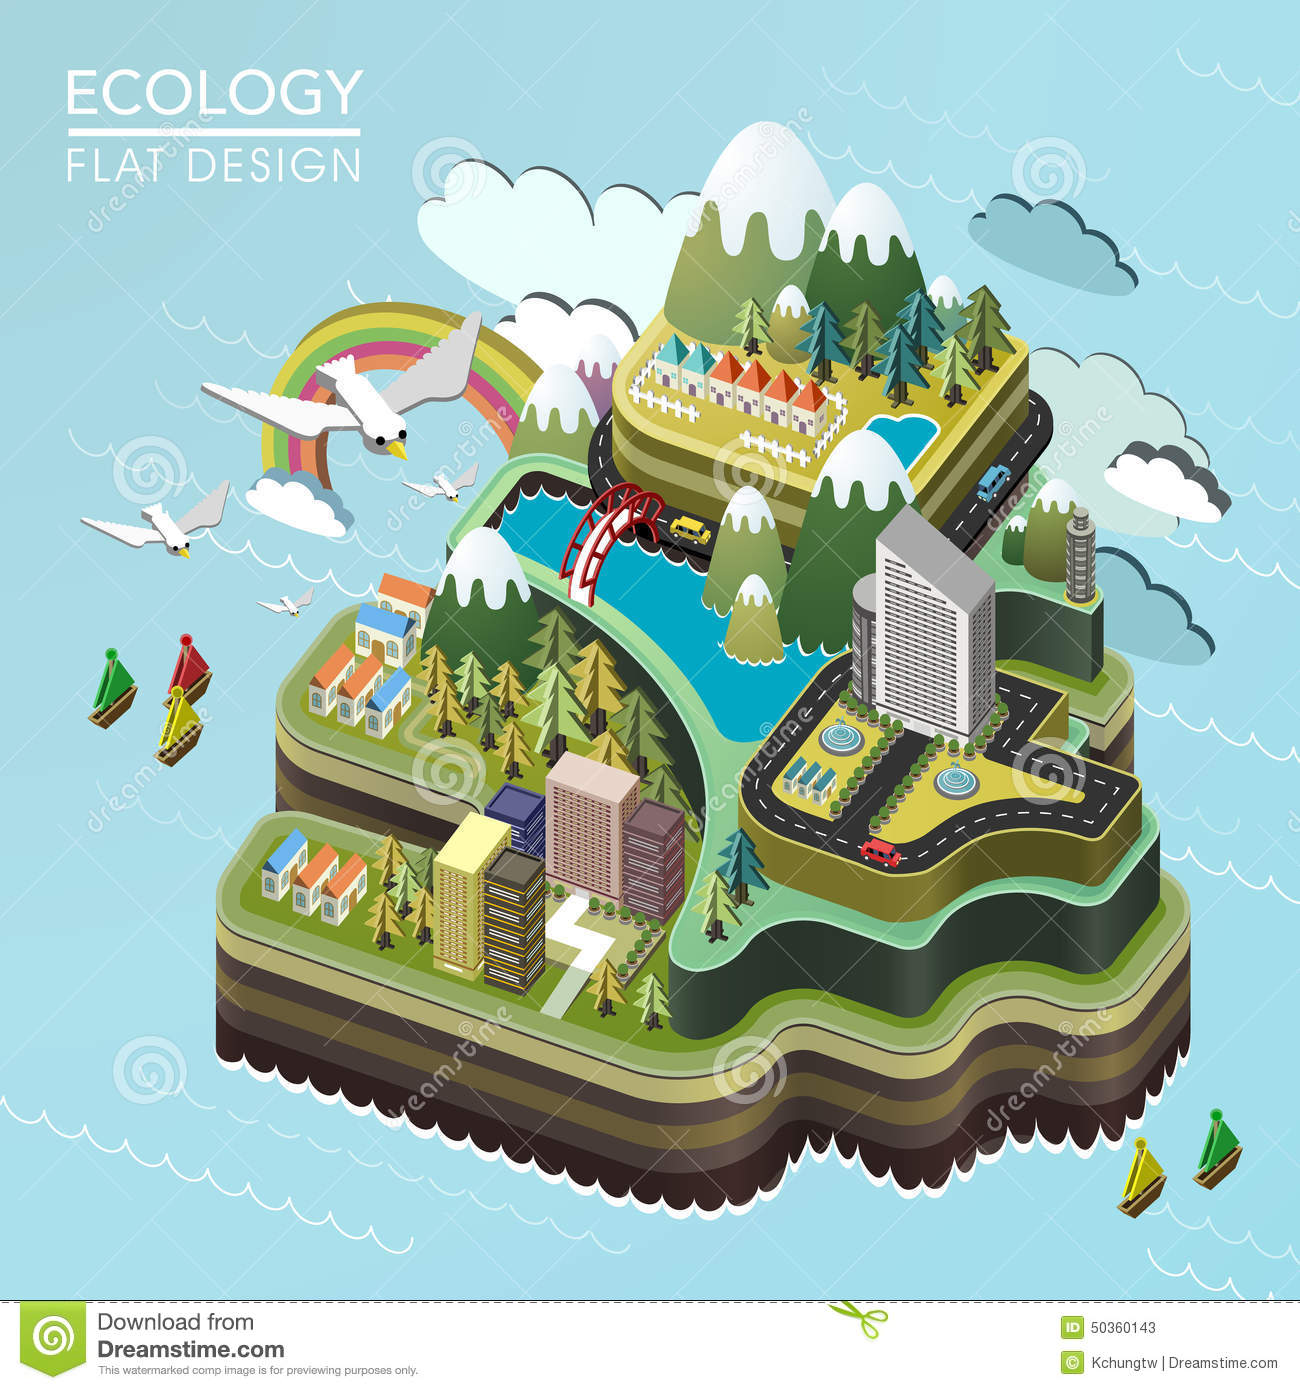 Flat 3d isometric lovely island landscape stock vector for 3d flat design online